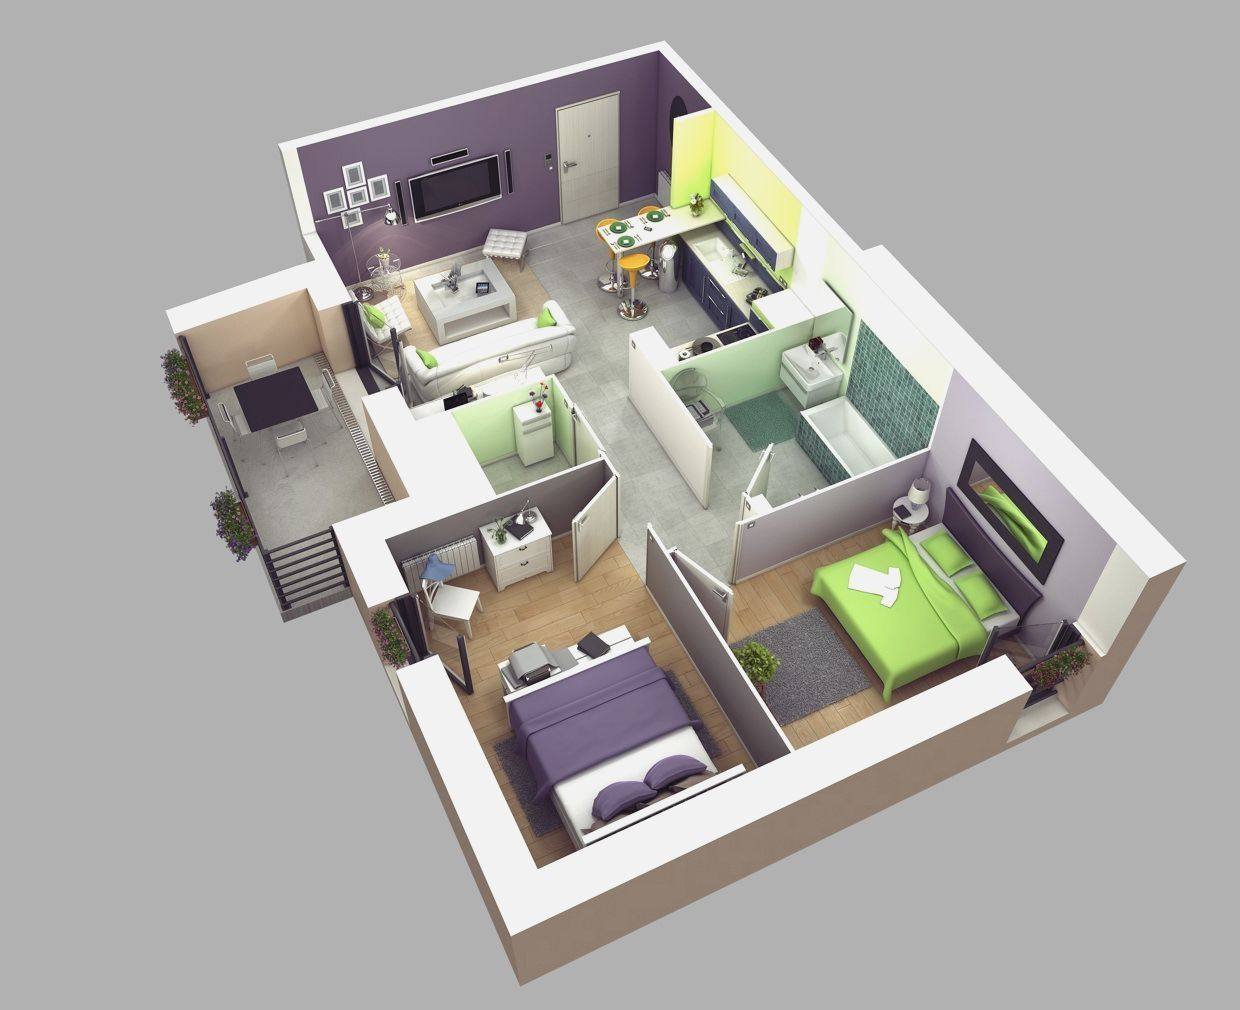 Designs For 2 Bedroom House Inspiration Small House Design 3D 2 Bedrooms  Small Bedroom  Pinterest Design Ideas